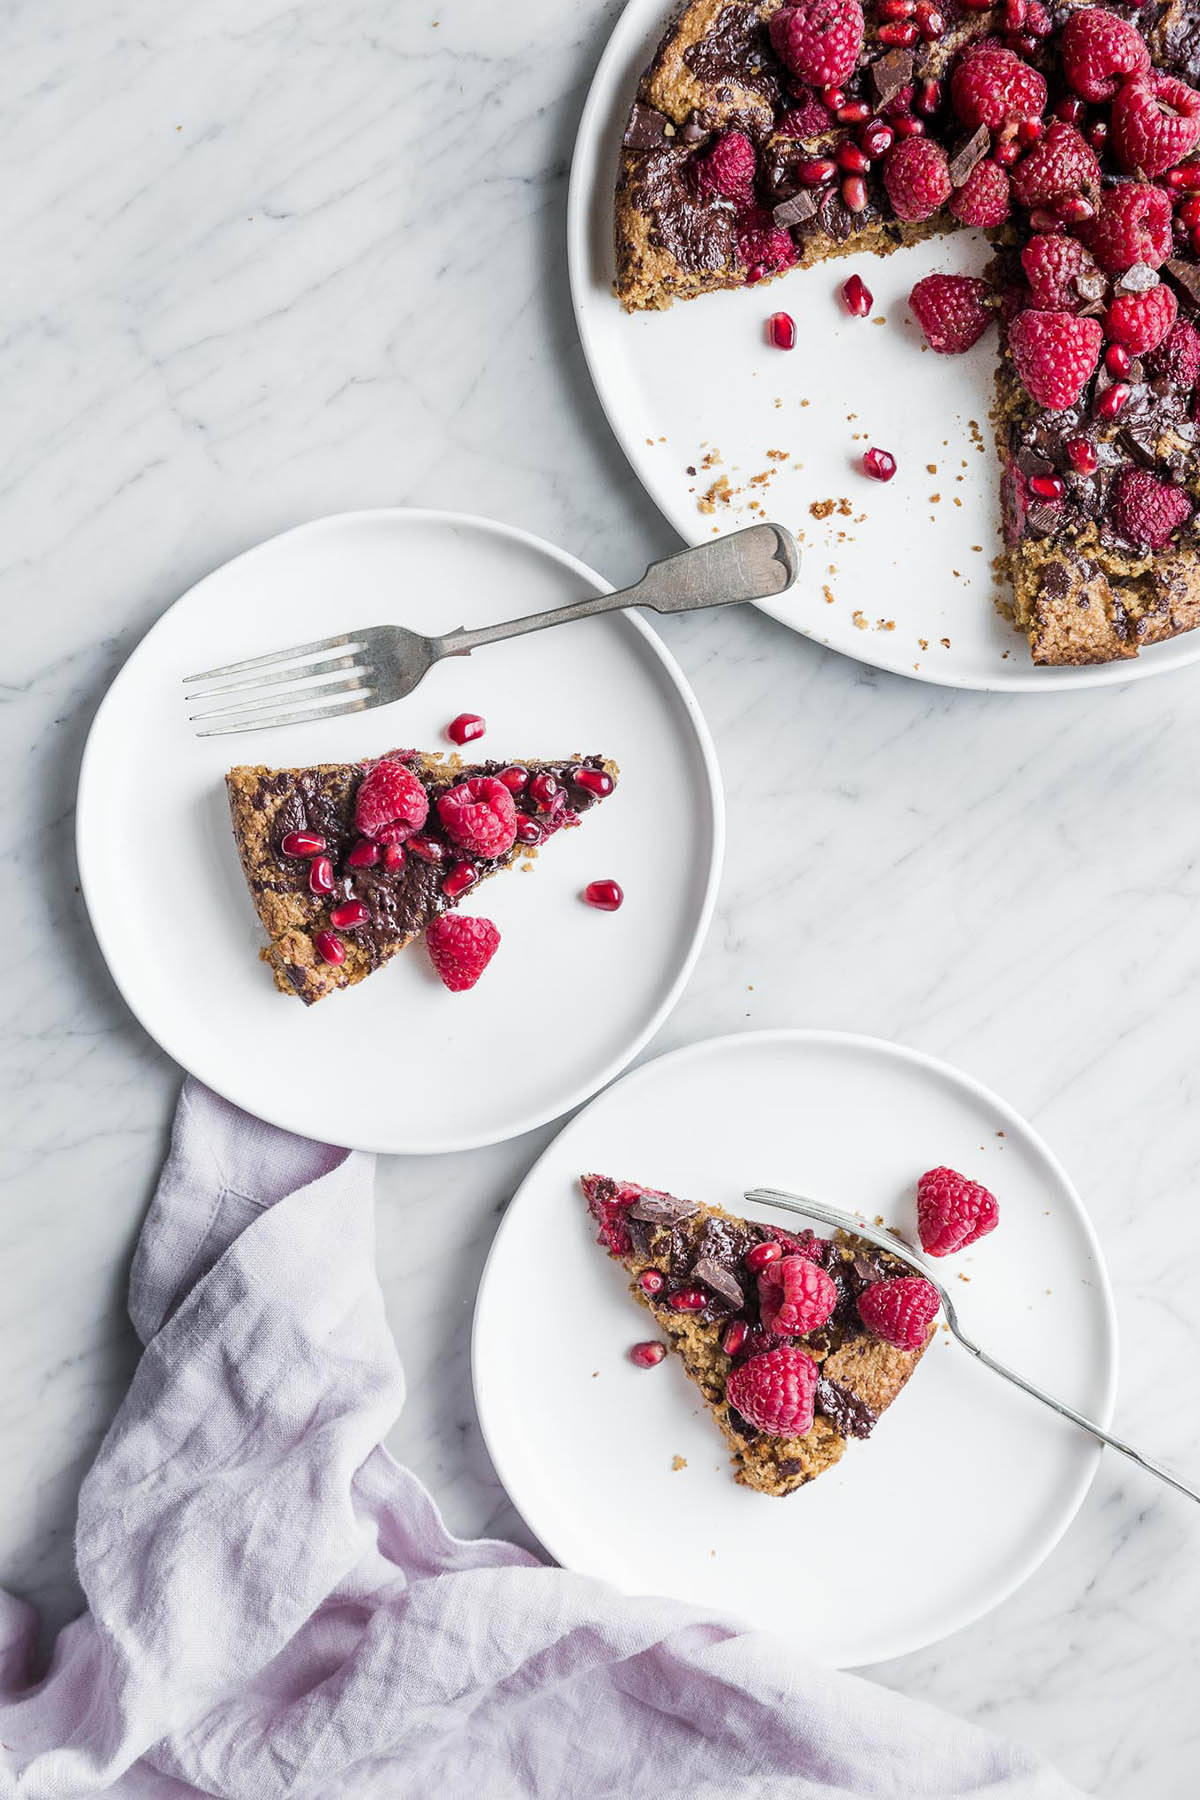 Two slices of cake topped with raspberries on plates.